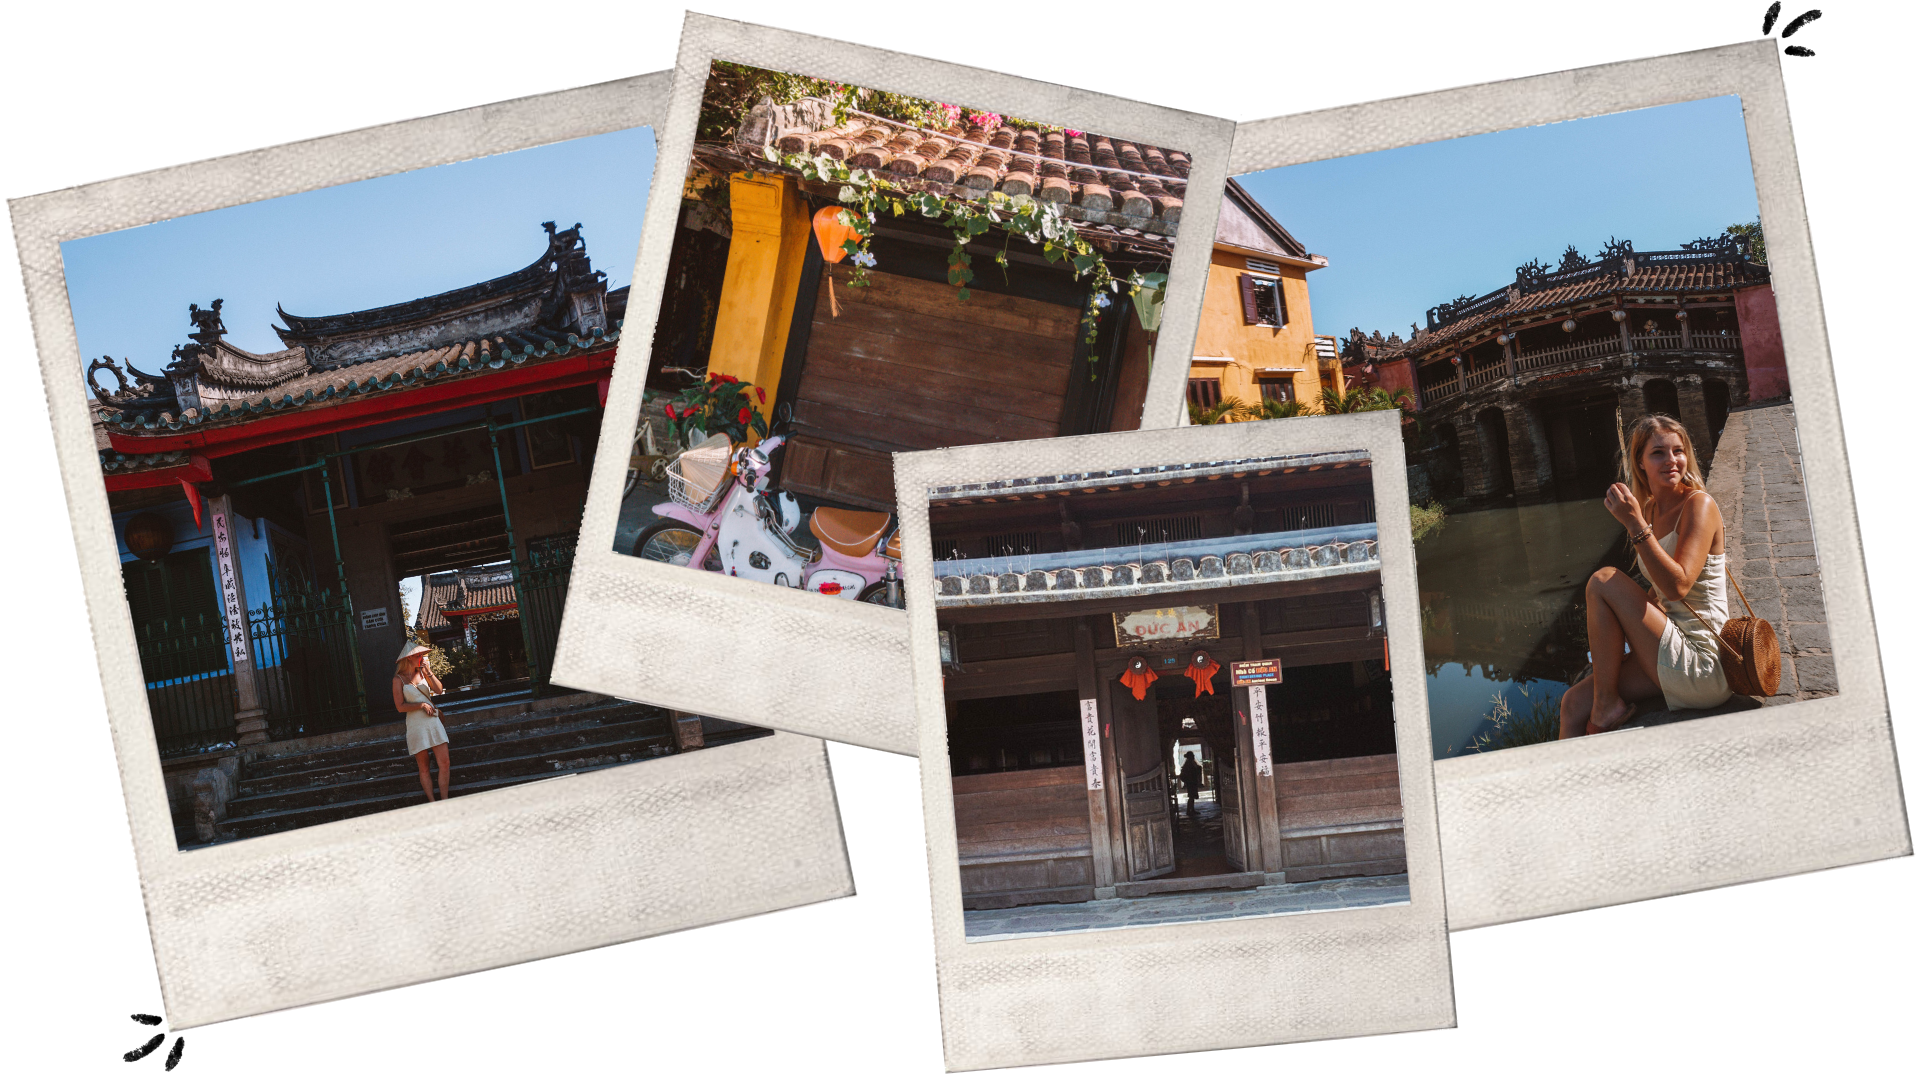 hoi an wanderlist best things to do Vietnam Japanese covered bridge old town